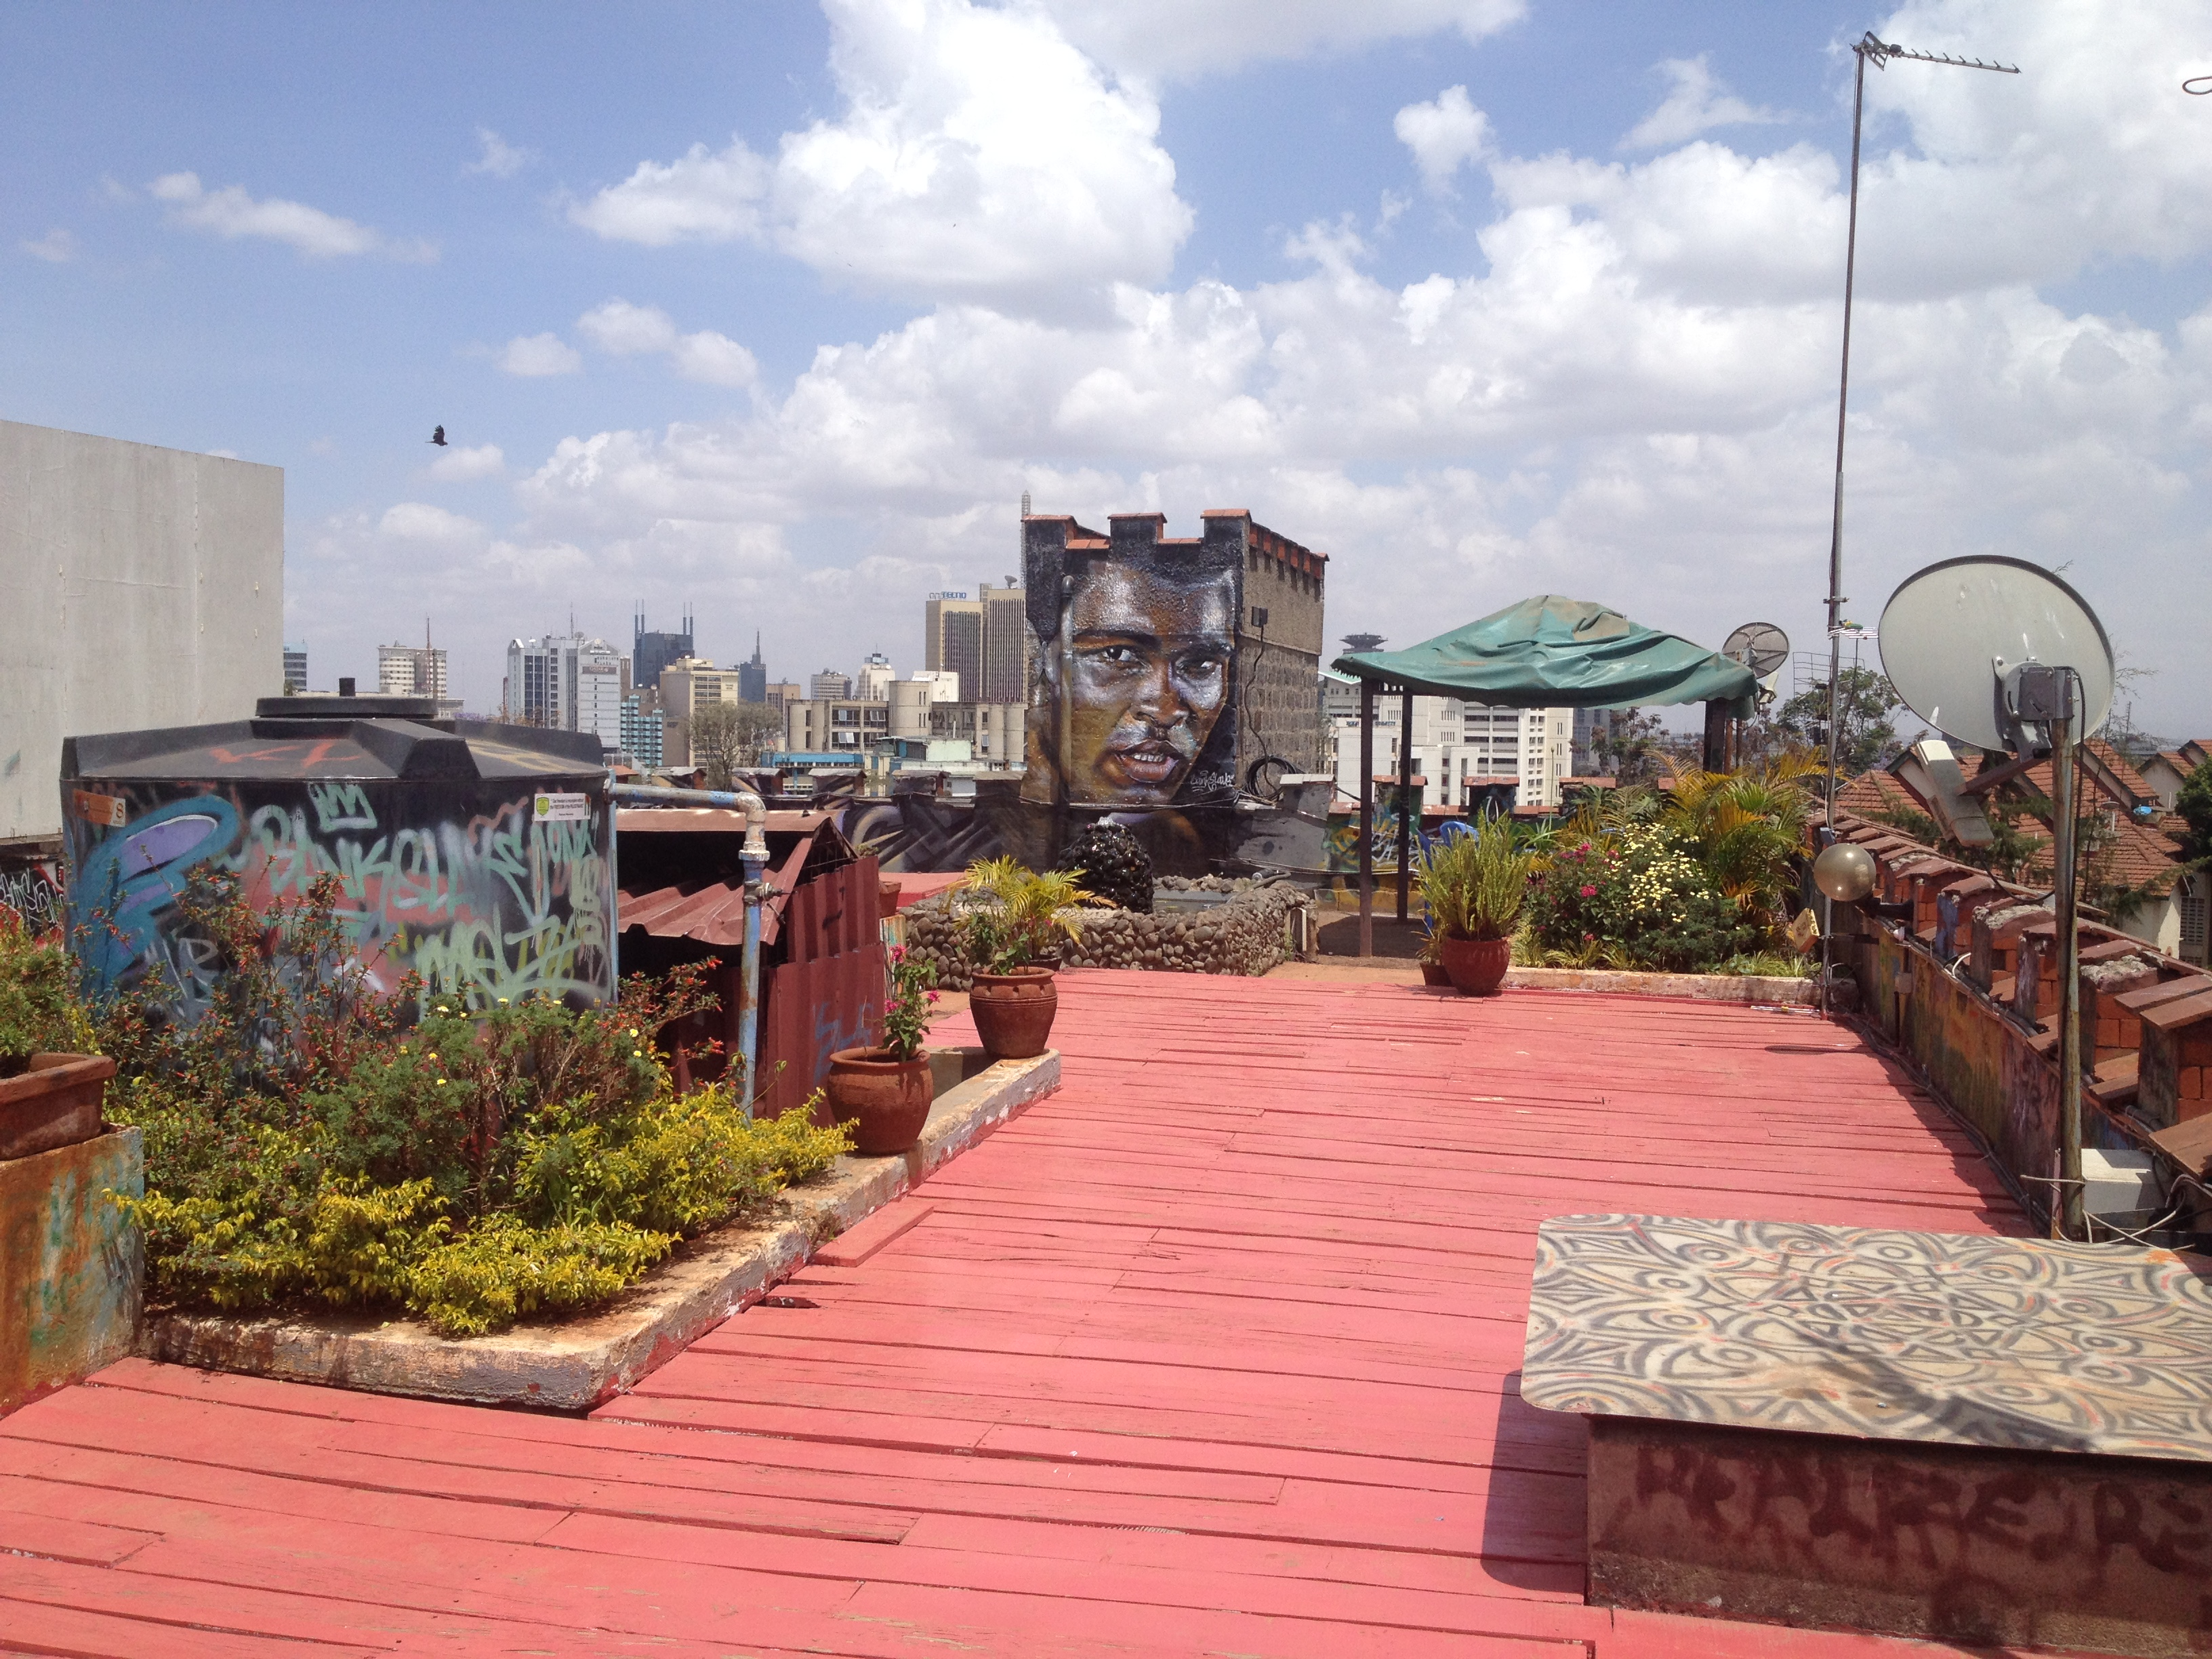 Image of outdoor space in Kenya.